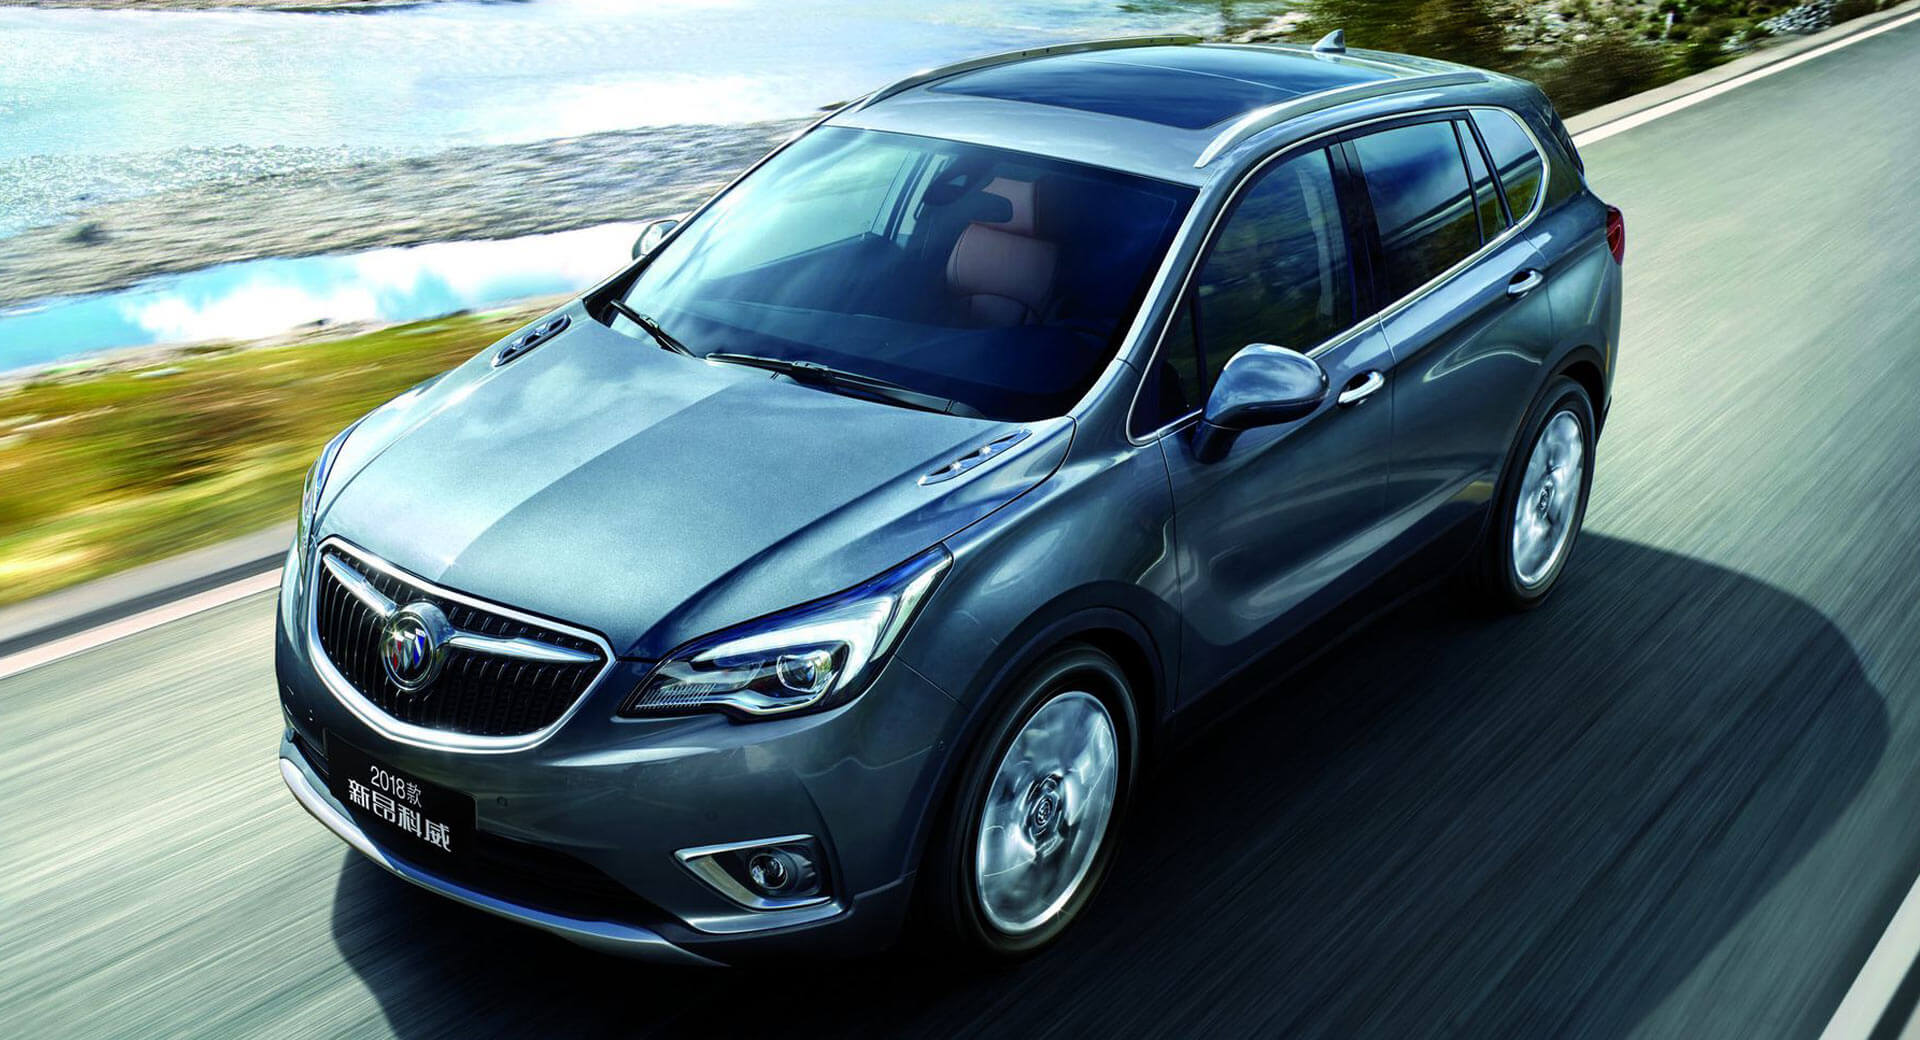 2019 Buick Envision Facelift Coming To US In April | Carscoops